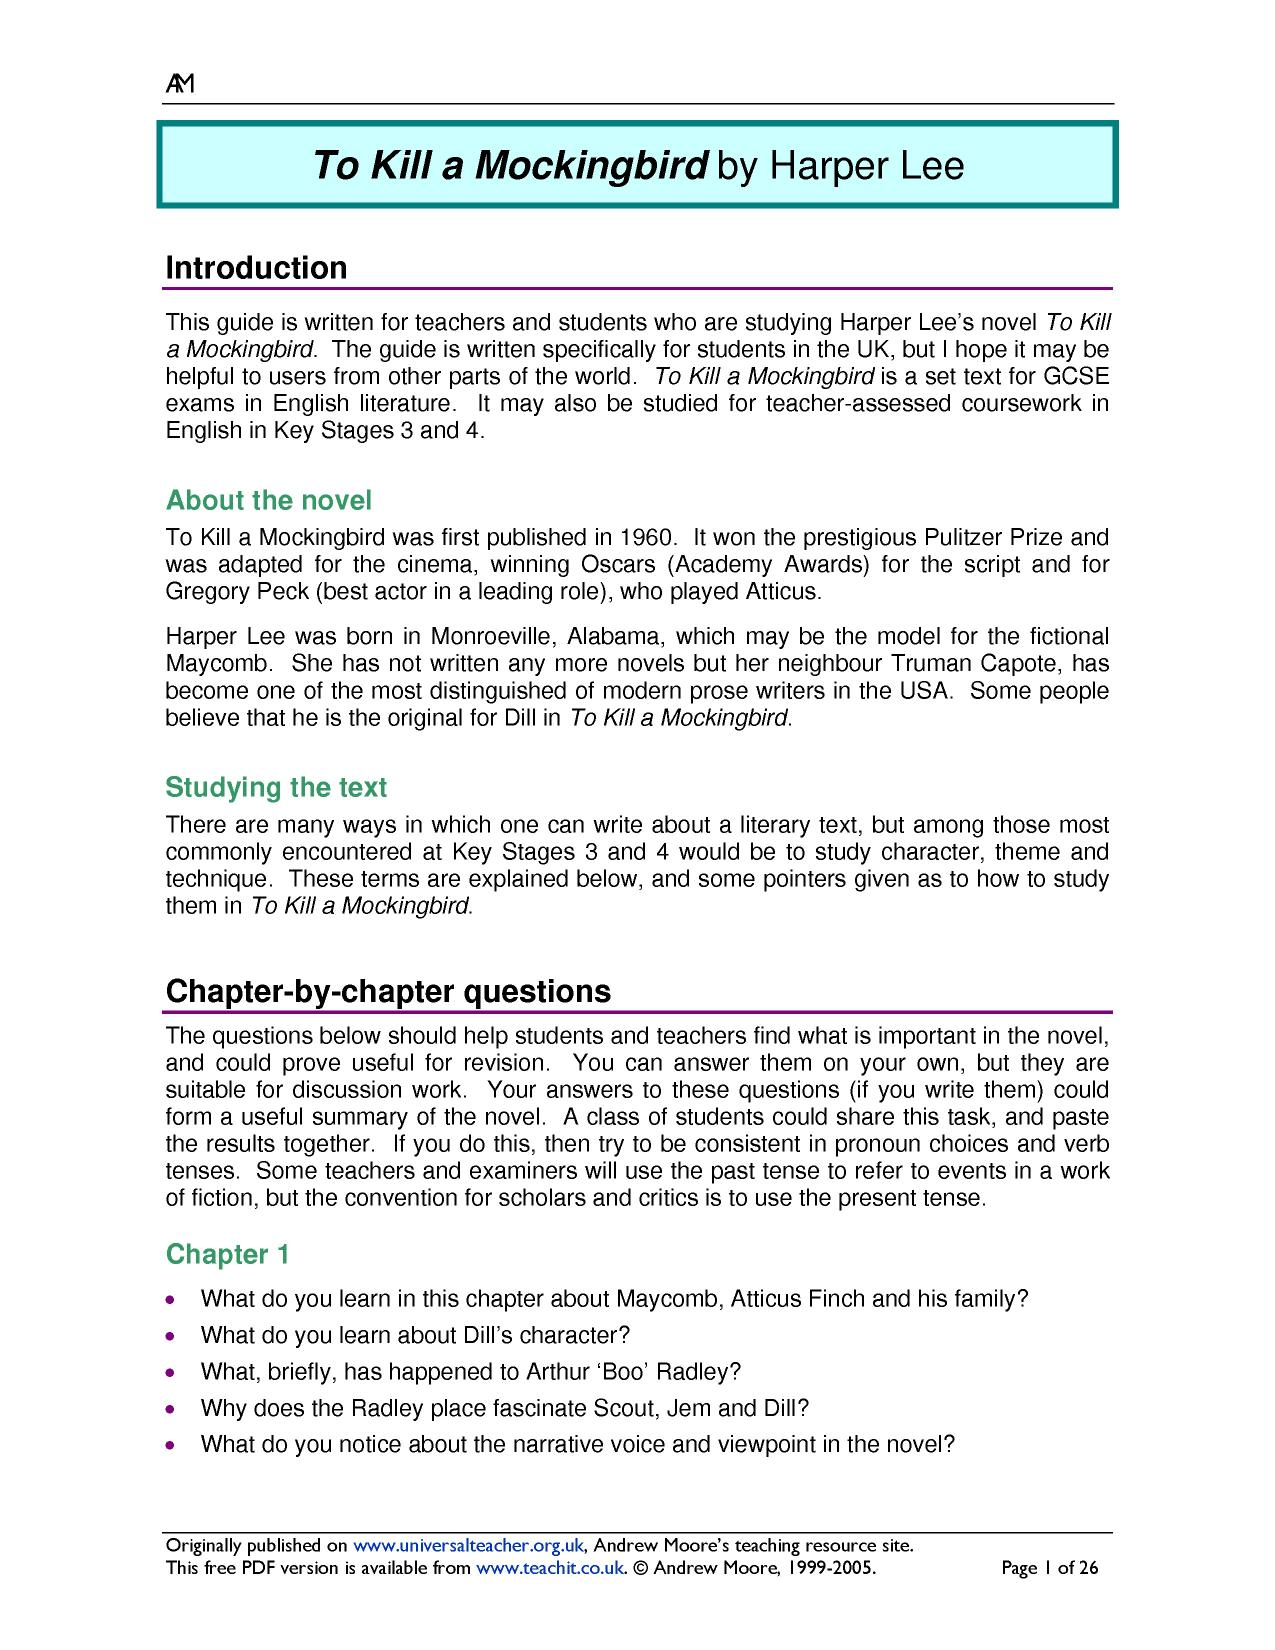 KS4 To Kill a Mockingbird by Harper Lee – To Kill a Mockingbird Worksheets